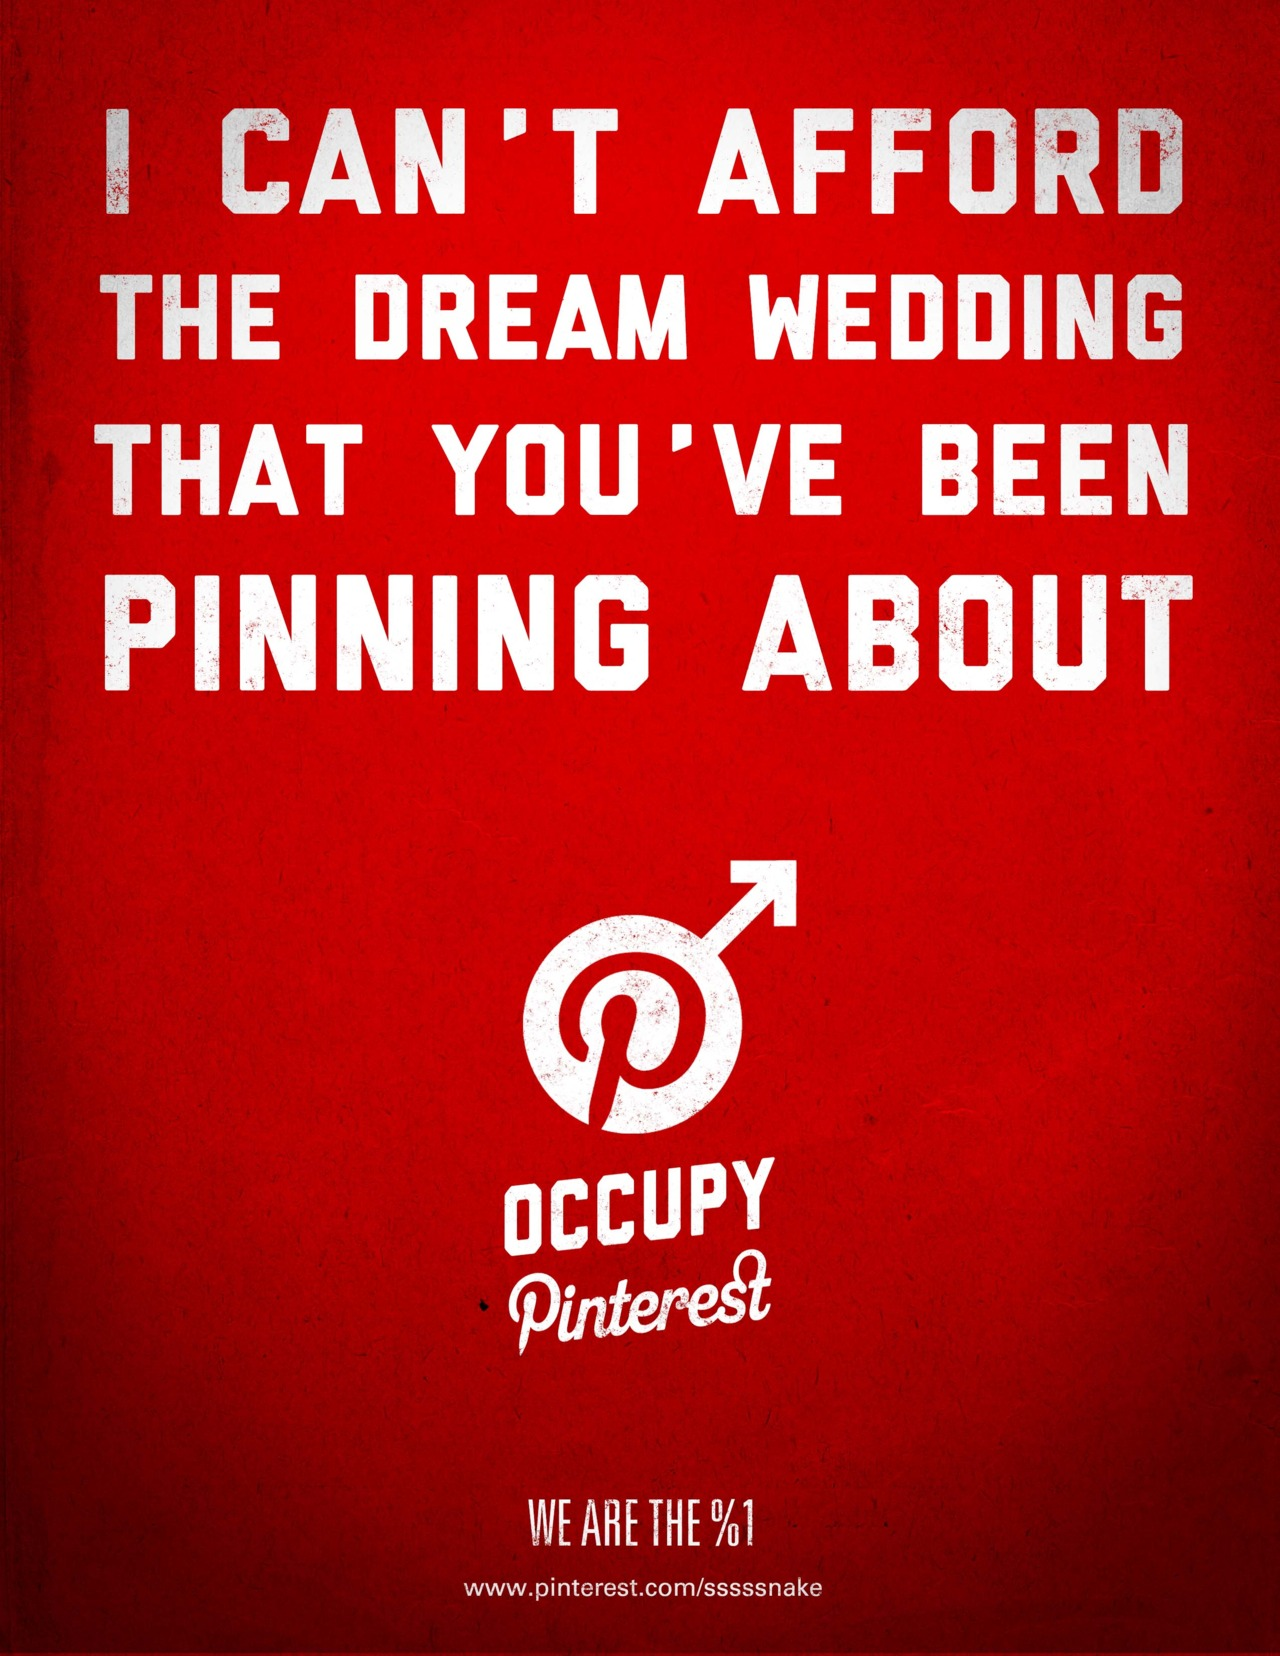 I am the %1 Occupy Pinterest